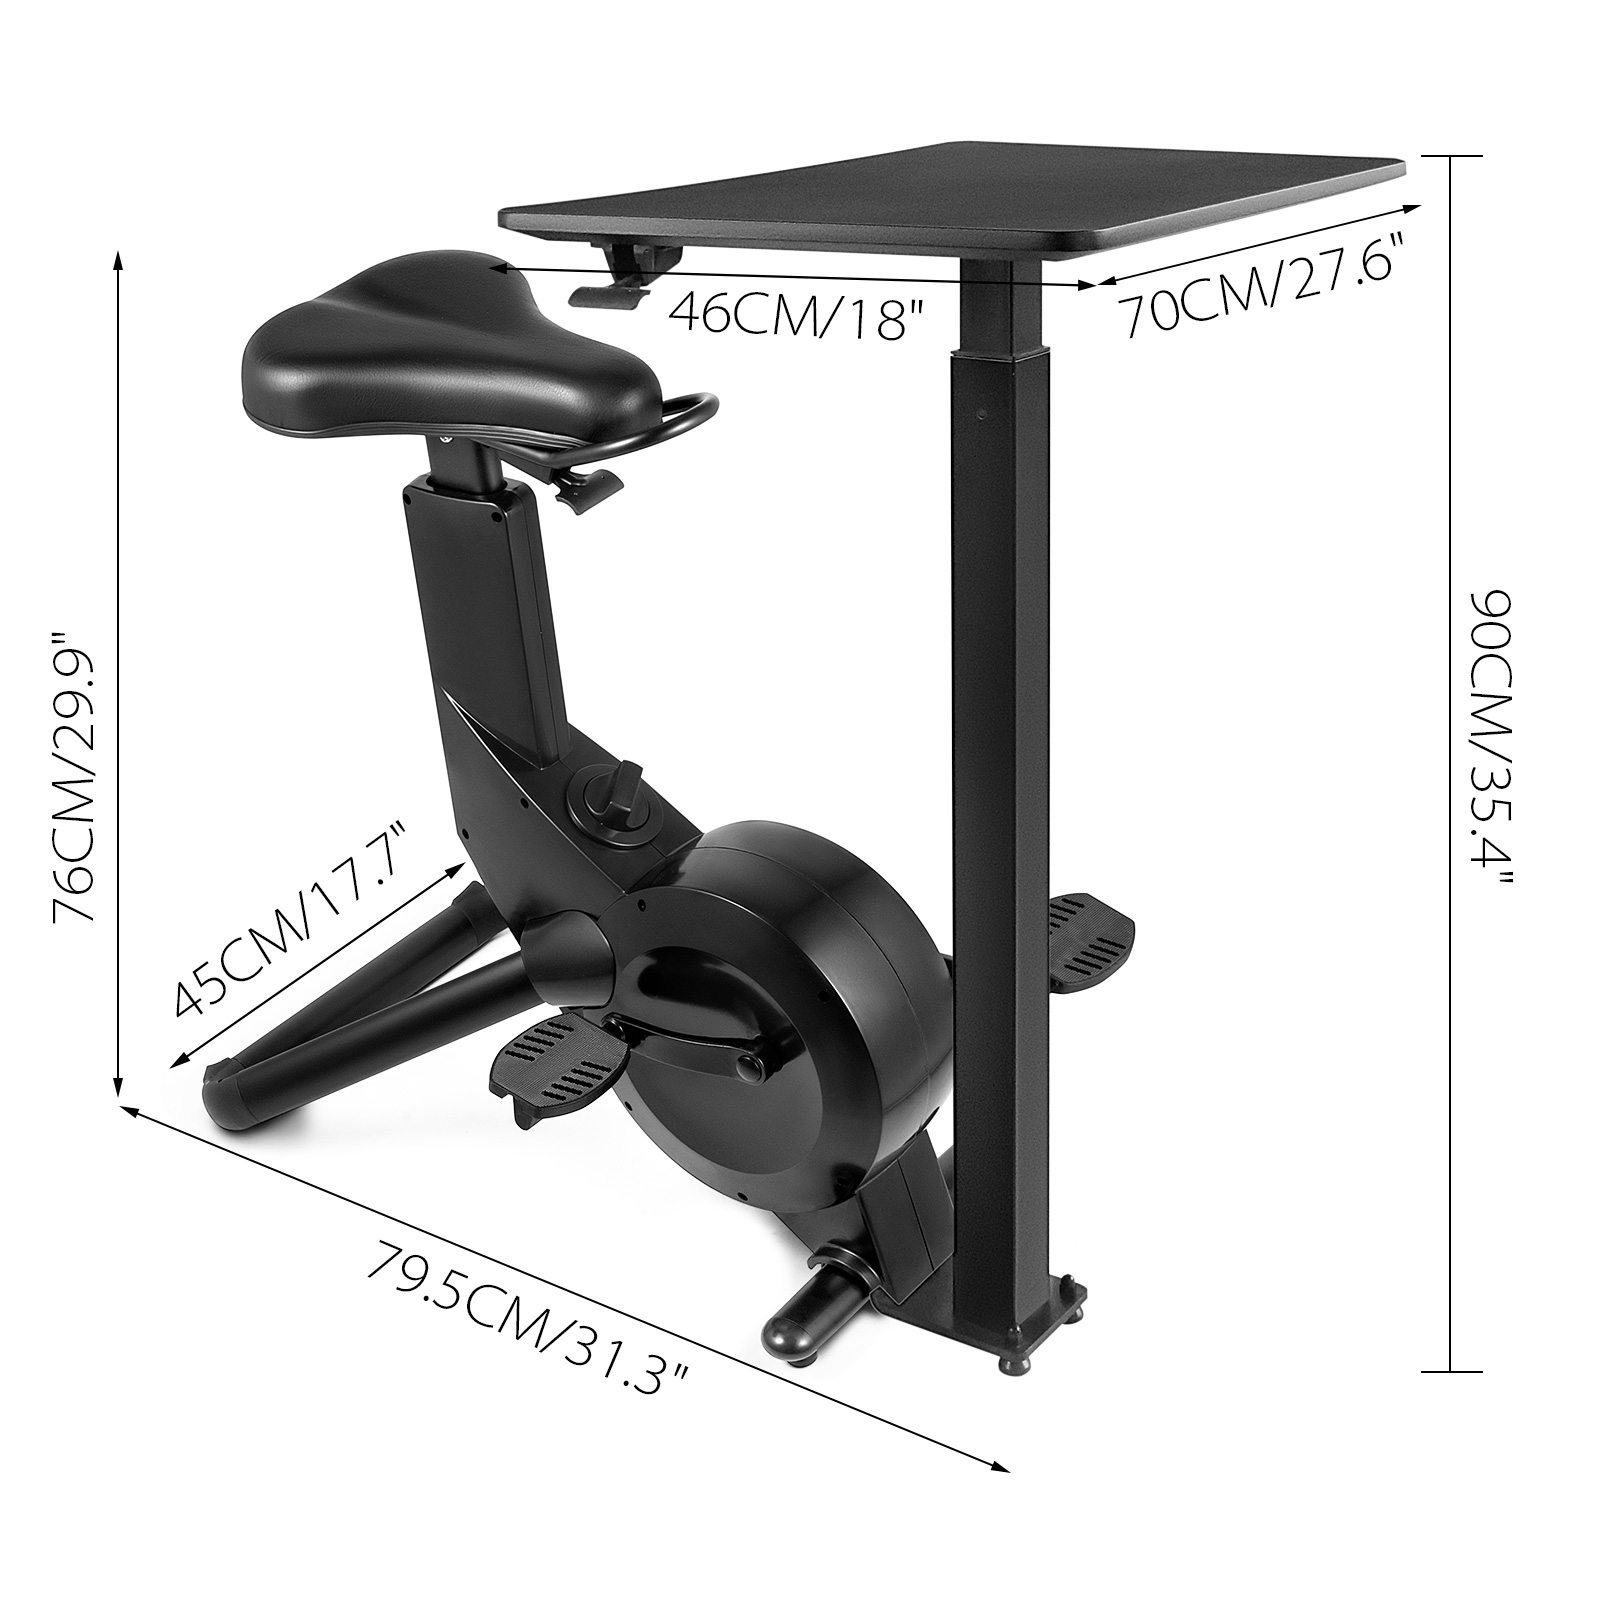 Multi-style-Magnetic-Exercise-Bike-office-Bicycle-under-Desk-Fitness-Cardio miniature 128